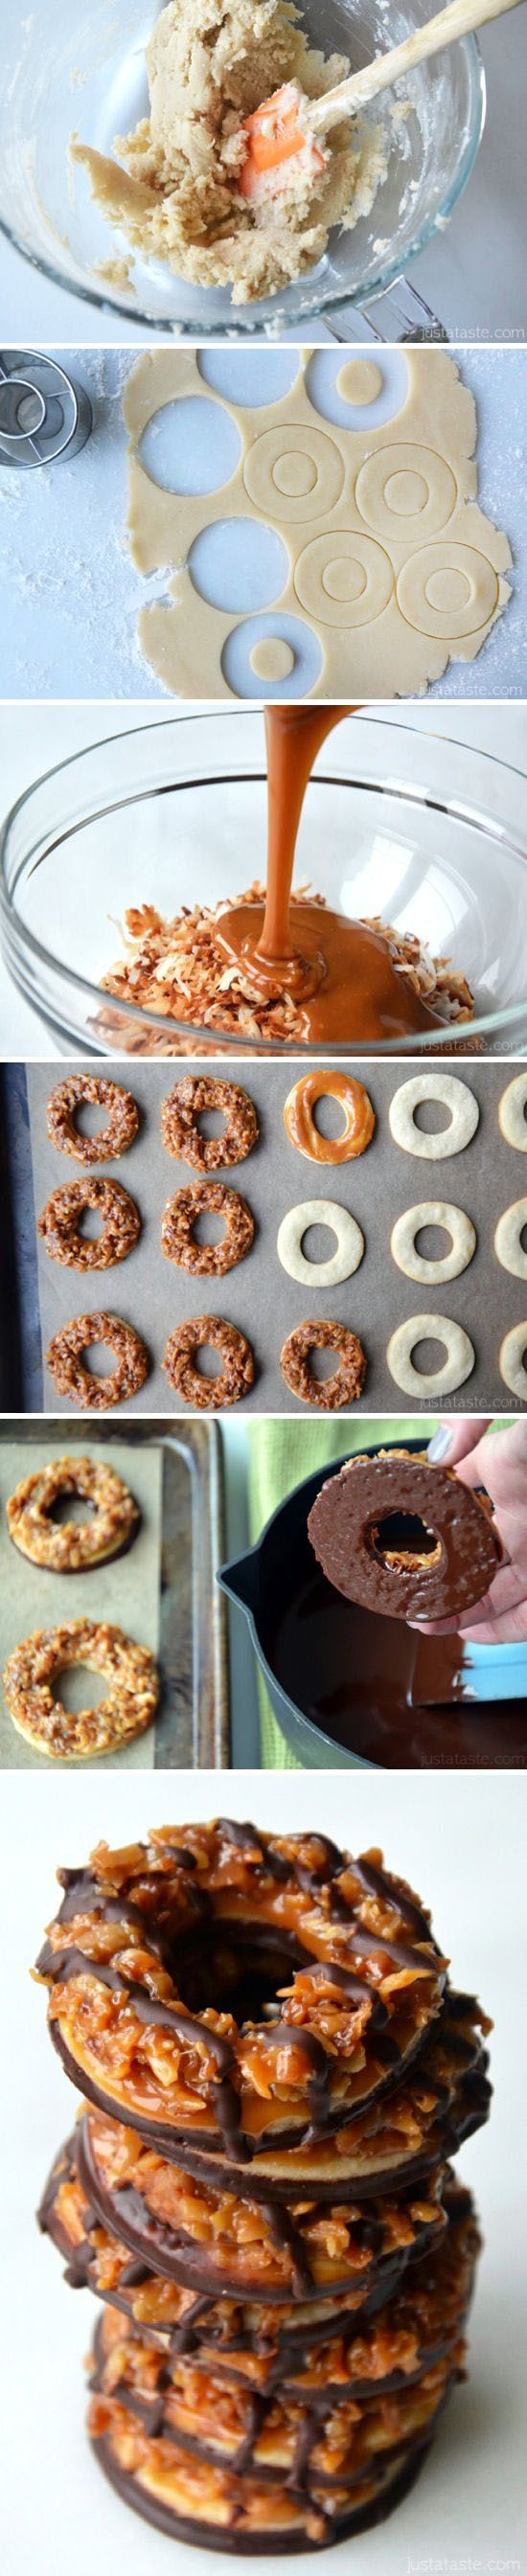 Homemade Samoas Girl Scout Cookies | Recipes to Try | Pinterest